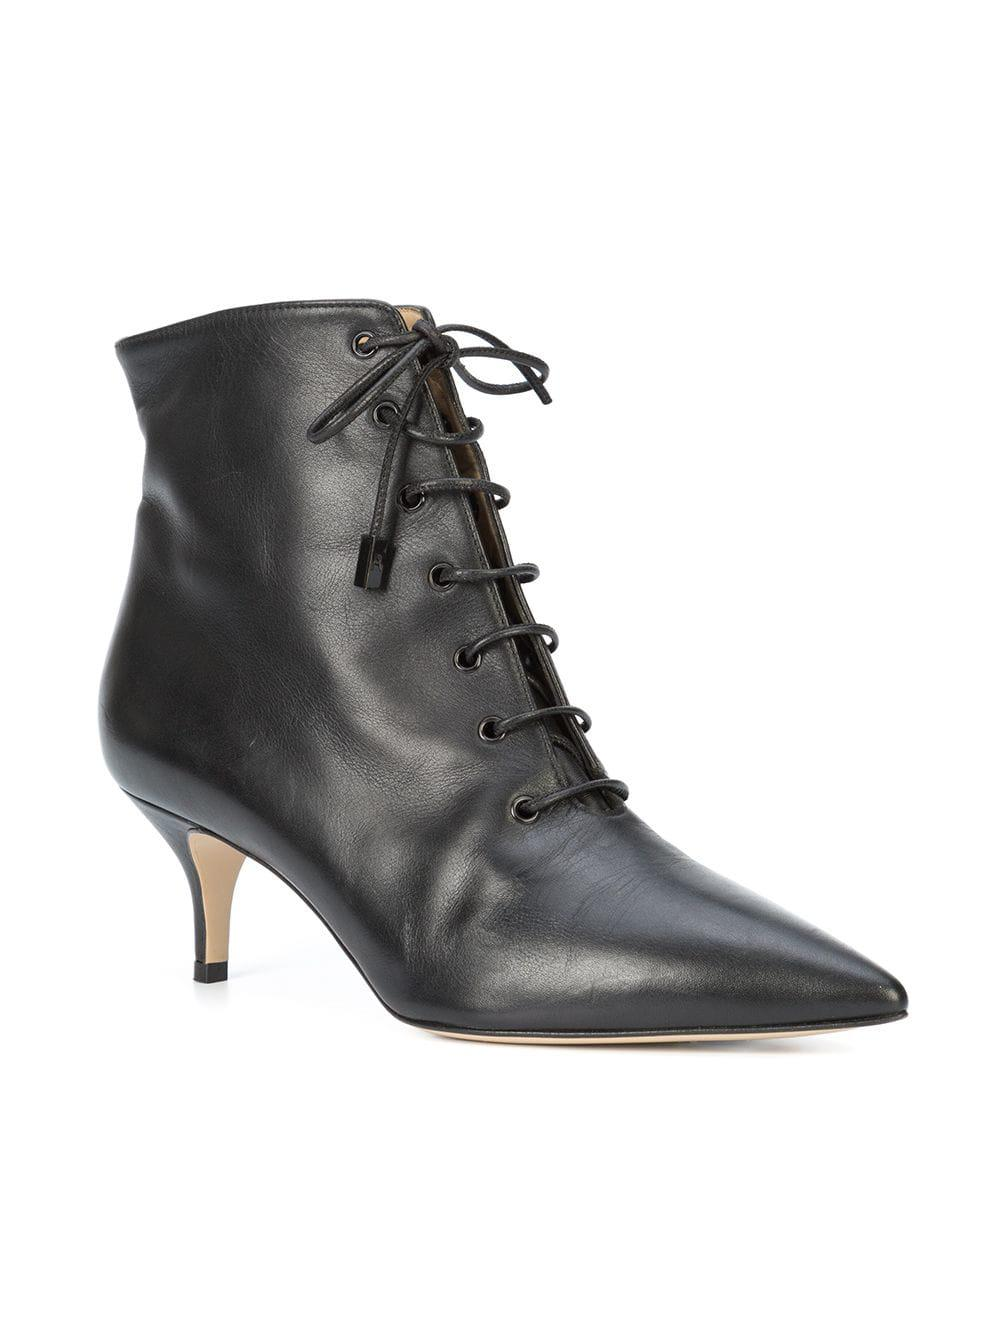 Paul Andrew Leather Lace-up Ankle Boots in Black